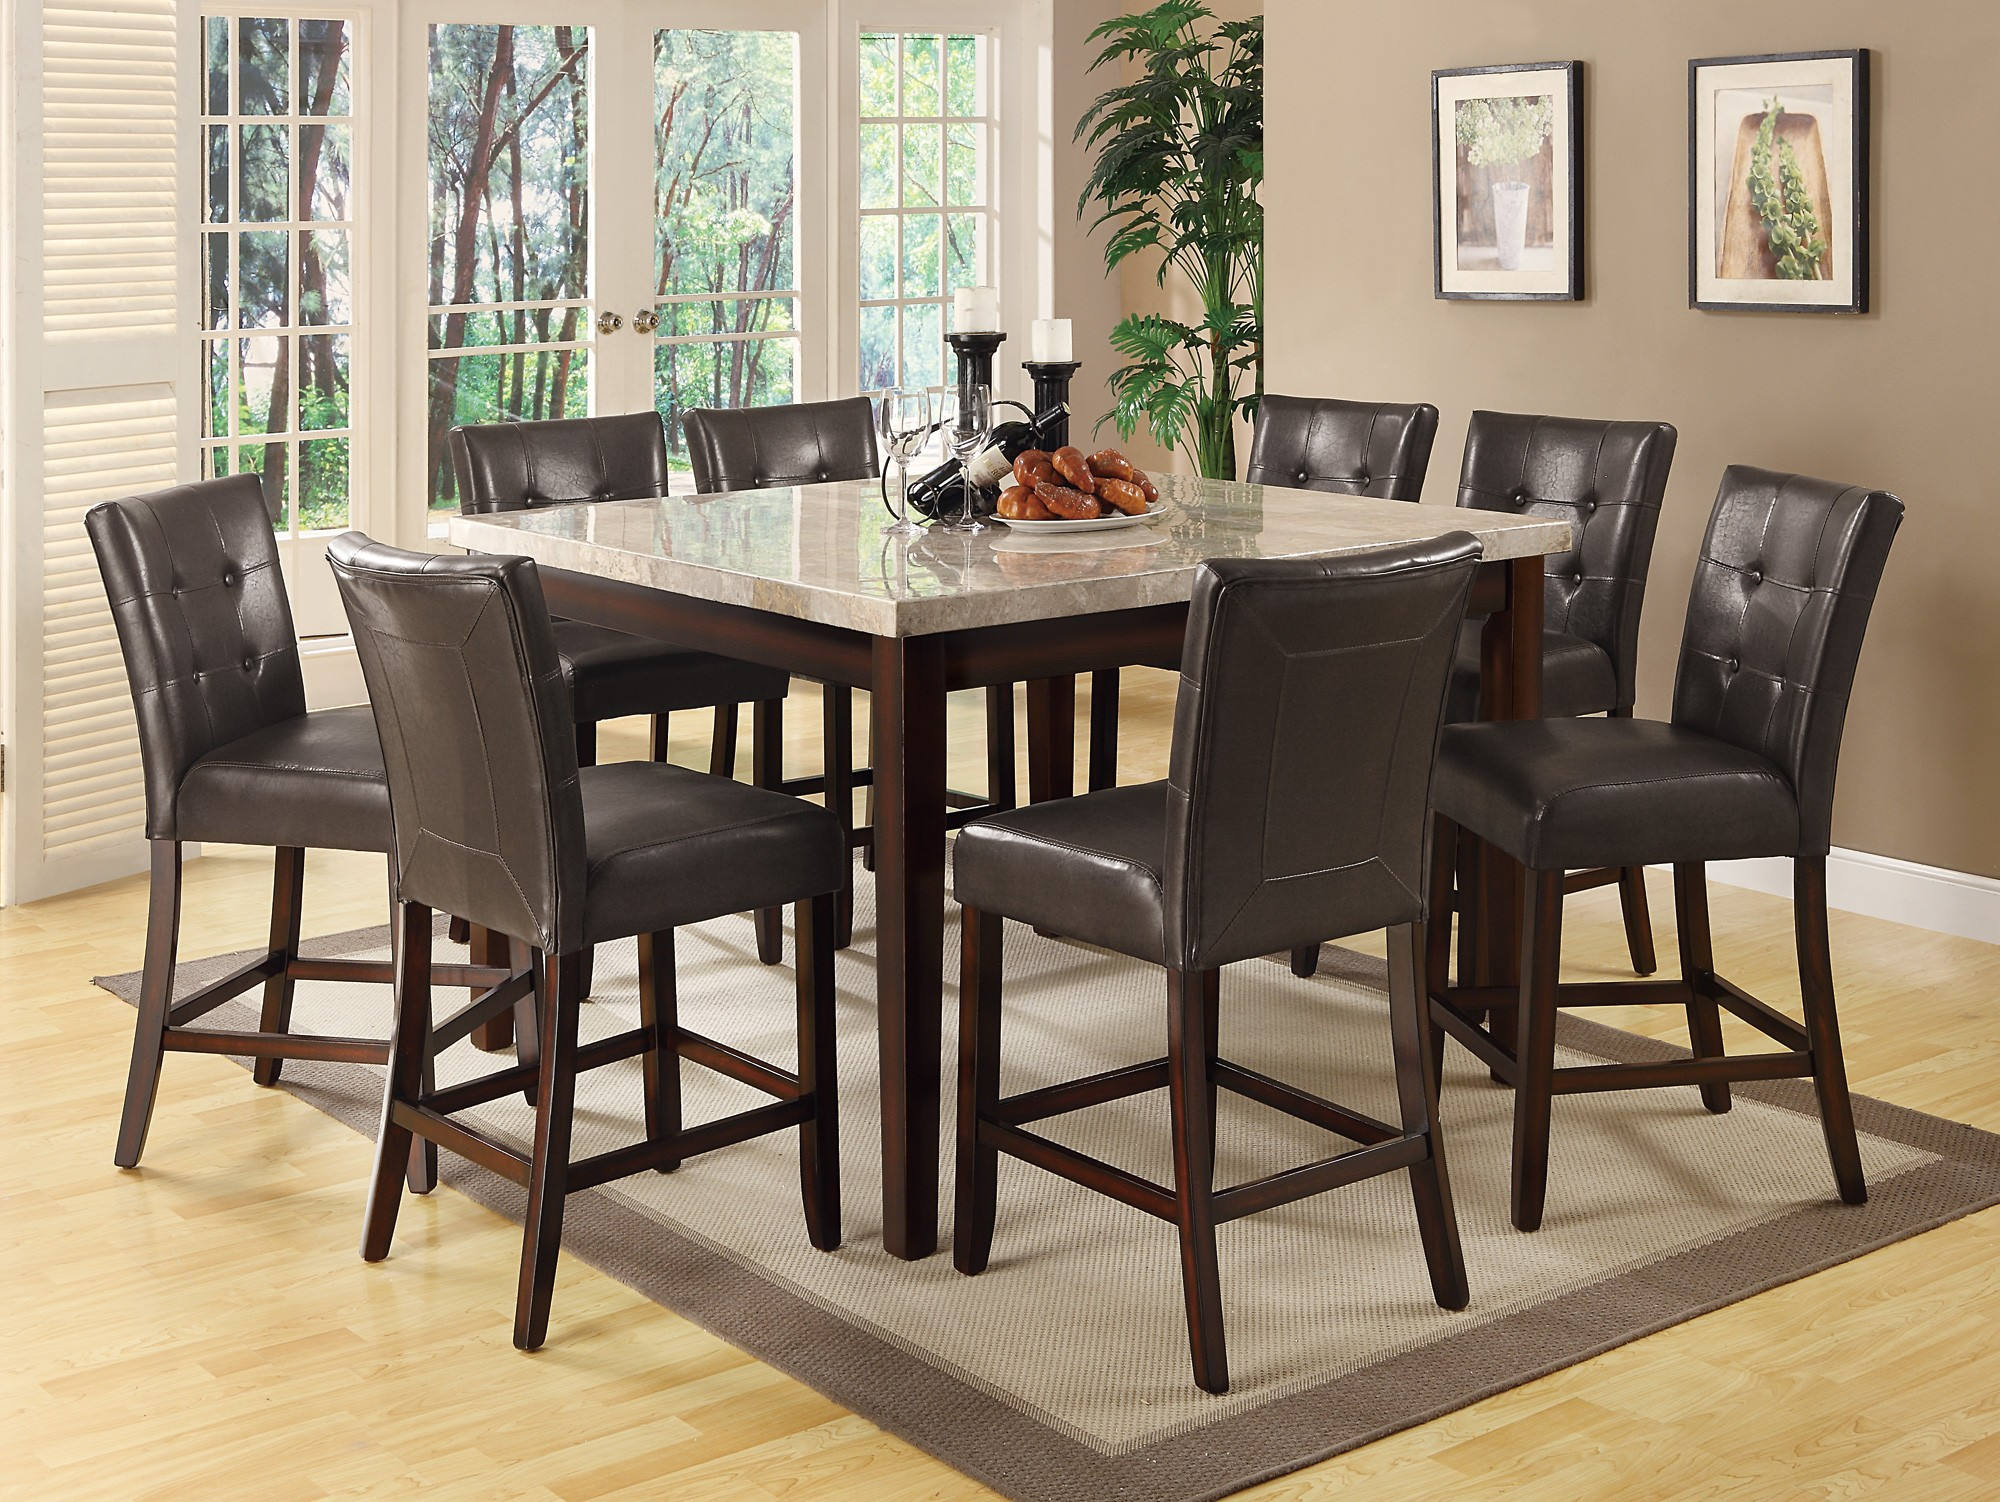 Milton Cappuccino Counter Height Dining Room Set from ...